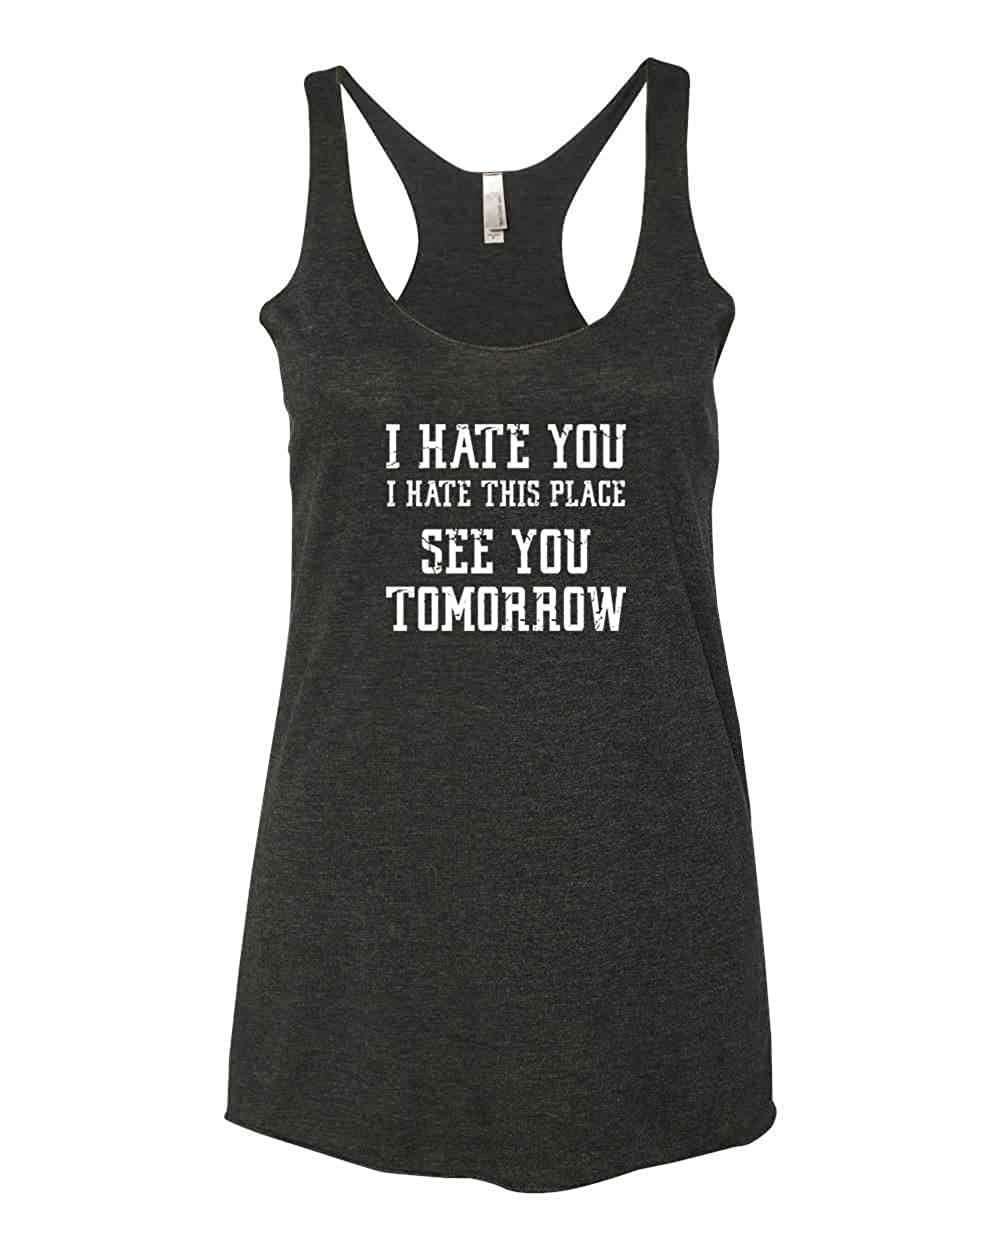 Panoware Women\'s Funny Workout Tank Top | I Hate You I Hate This Place See You Tomorrow